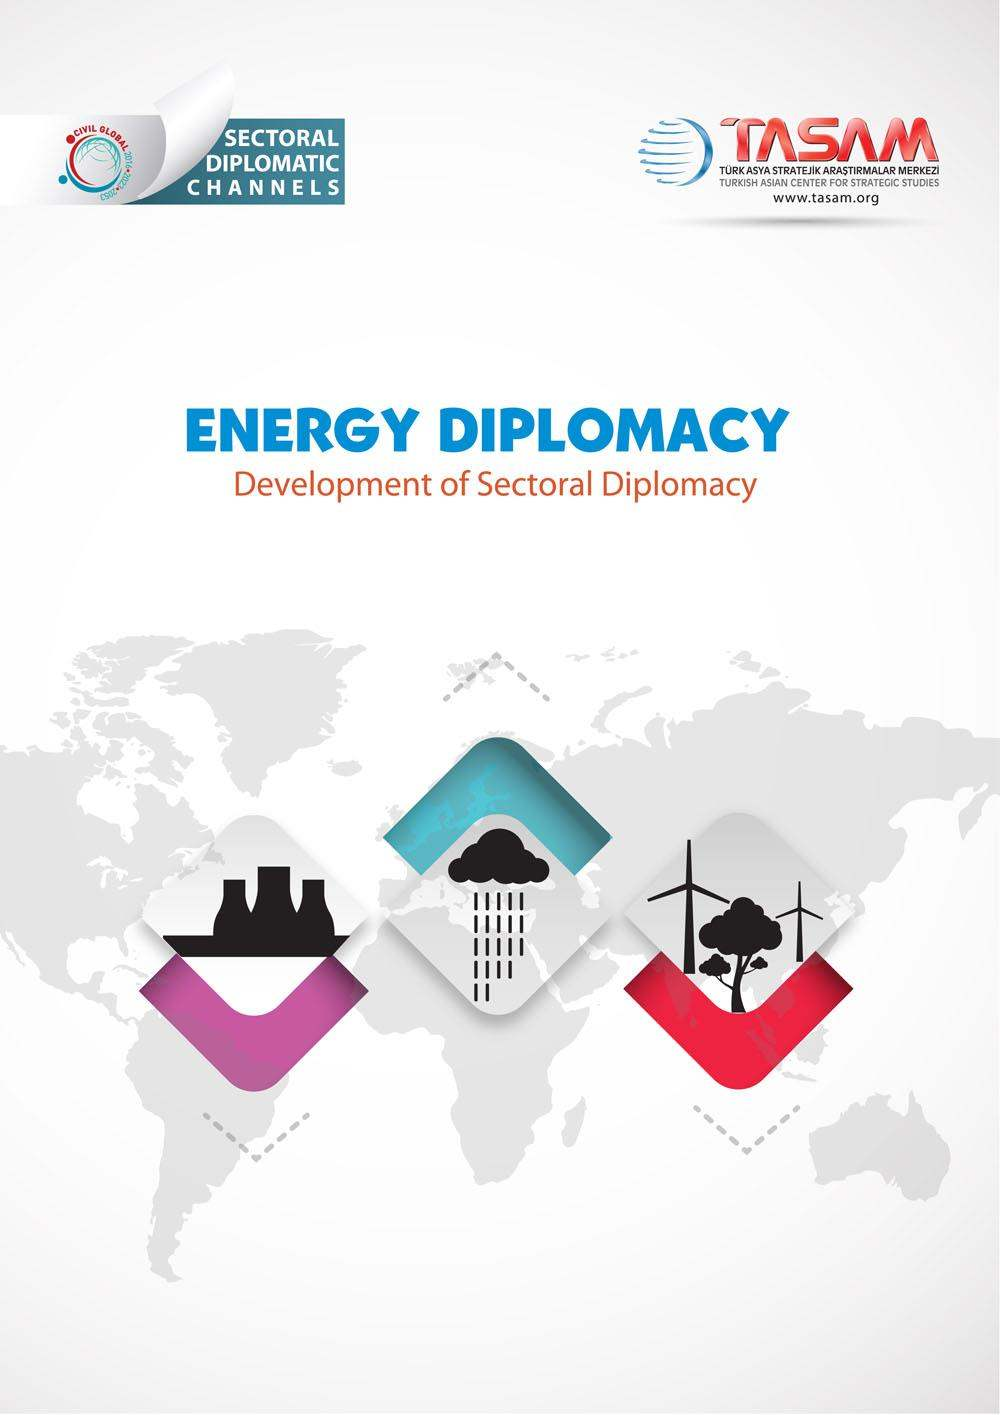 Energy Diplomacy Workshop